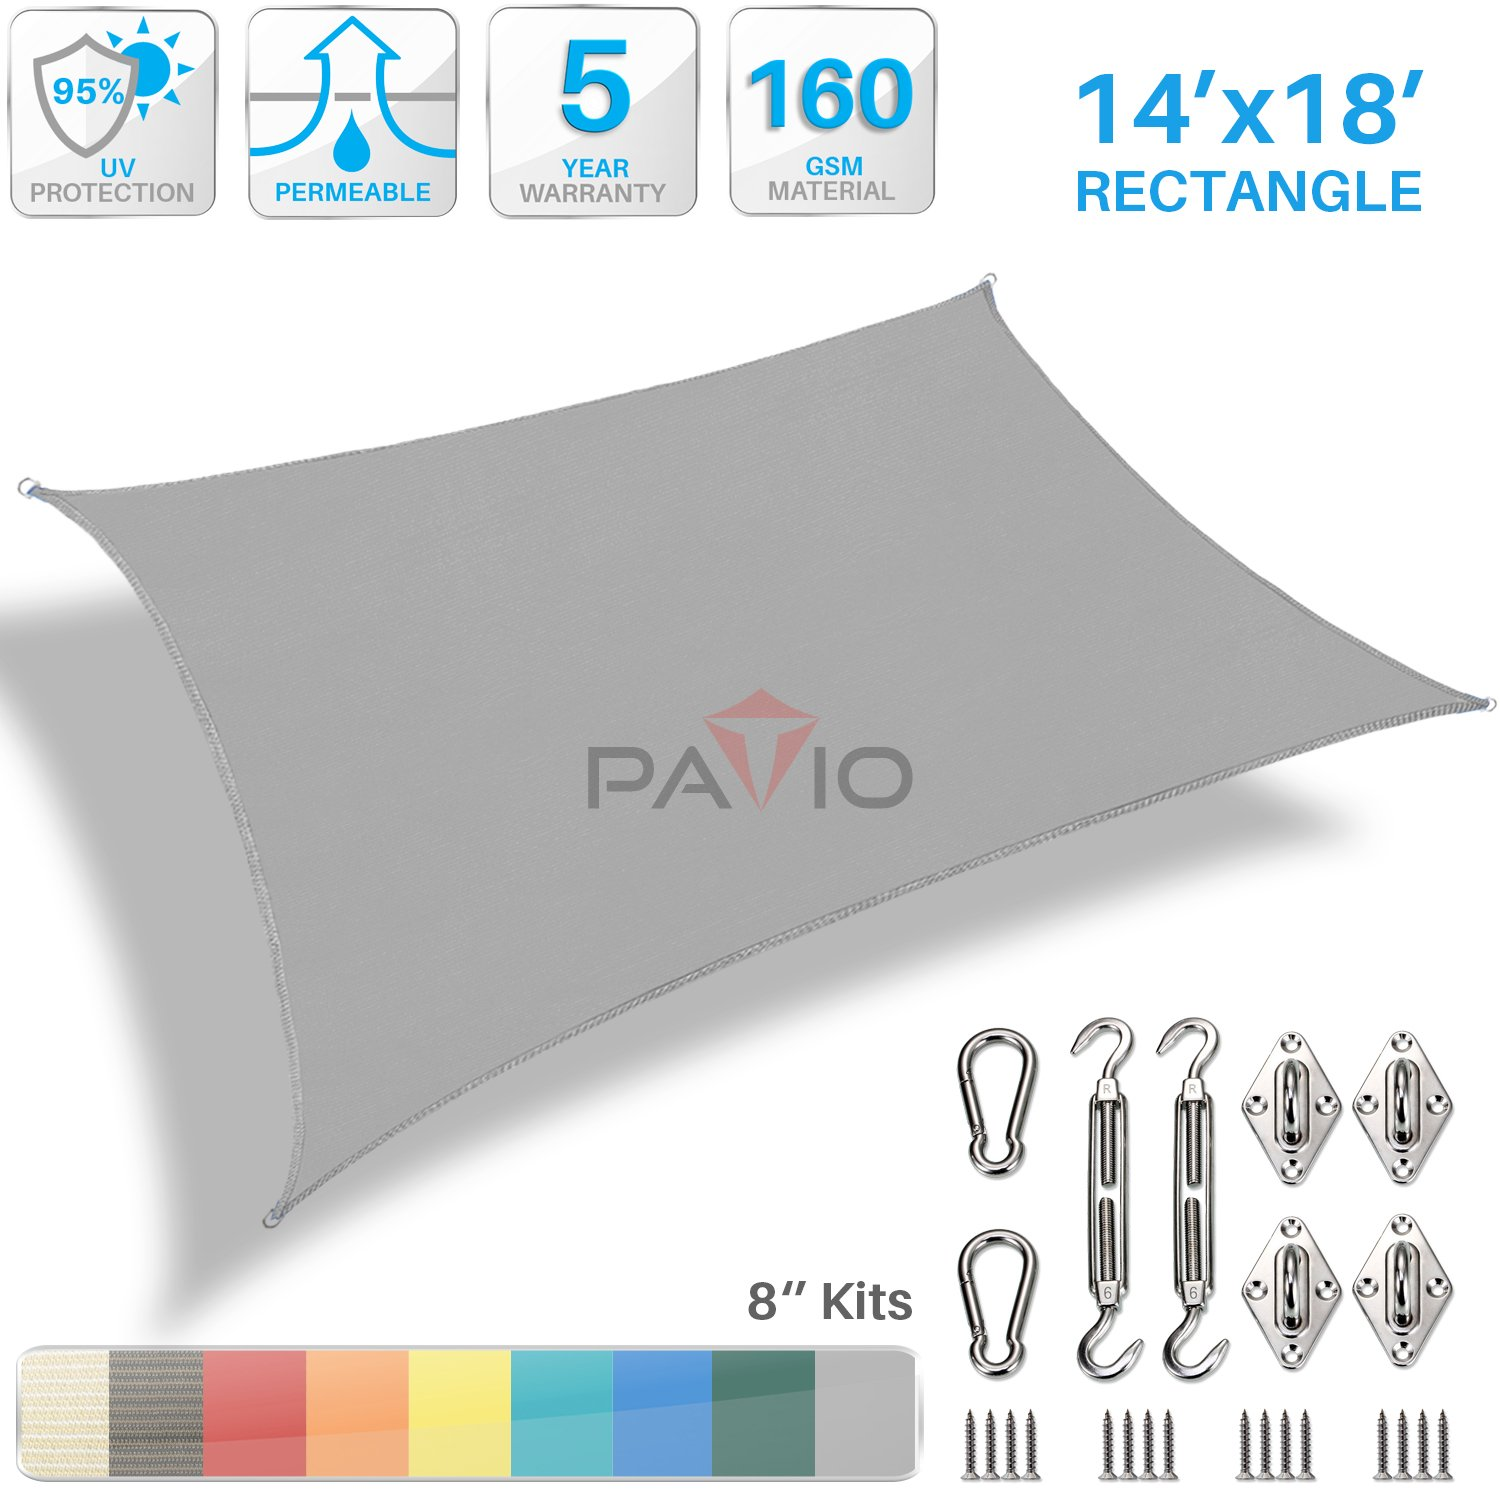 Patio Paradise 14' x 18' Sun Shade Sail with 8 inch Hardware Kit, Light Grey Rectangle Patio Canopy Durable Shade Fabric Outdoor UV Shelter Cover - 3 Year Warranty - Custom Size Available